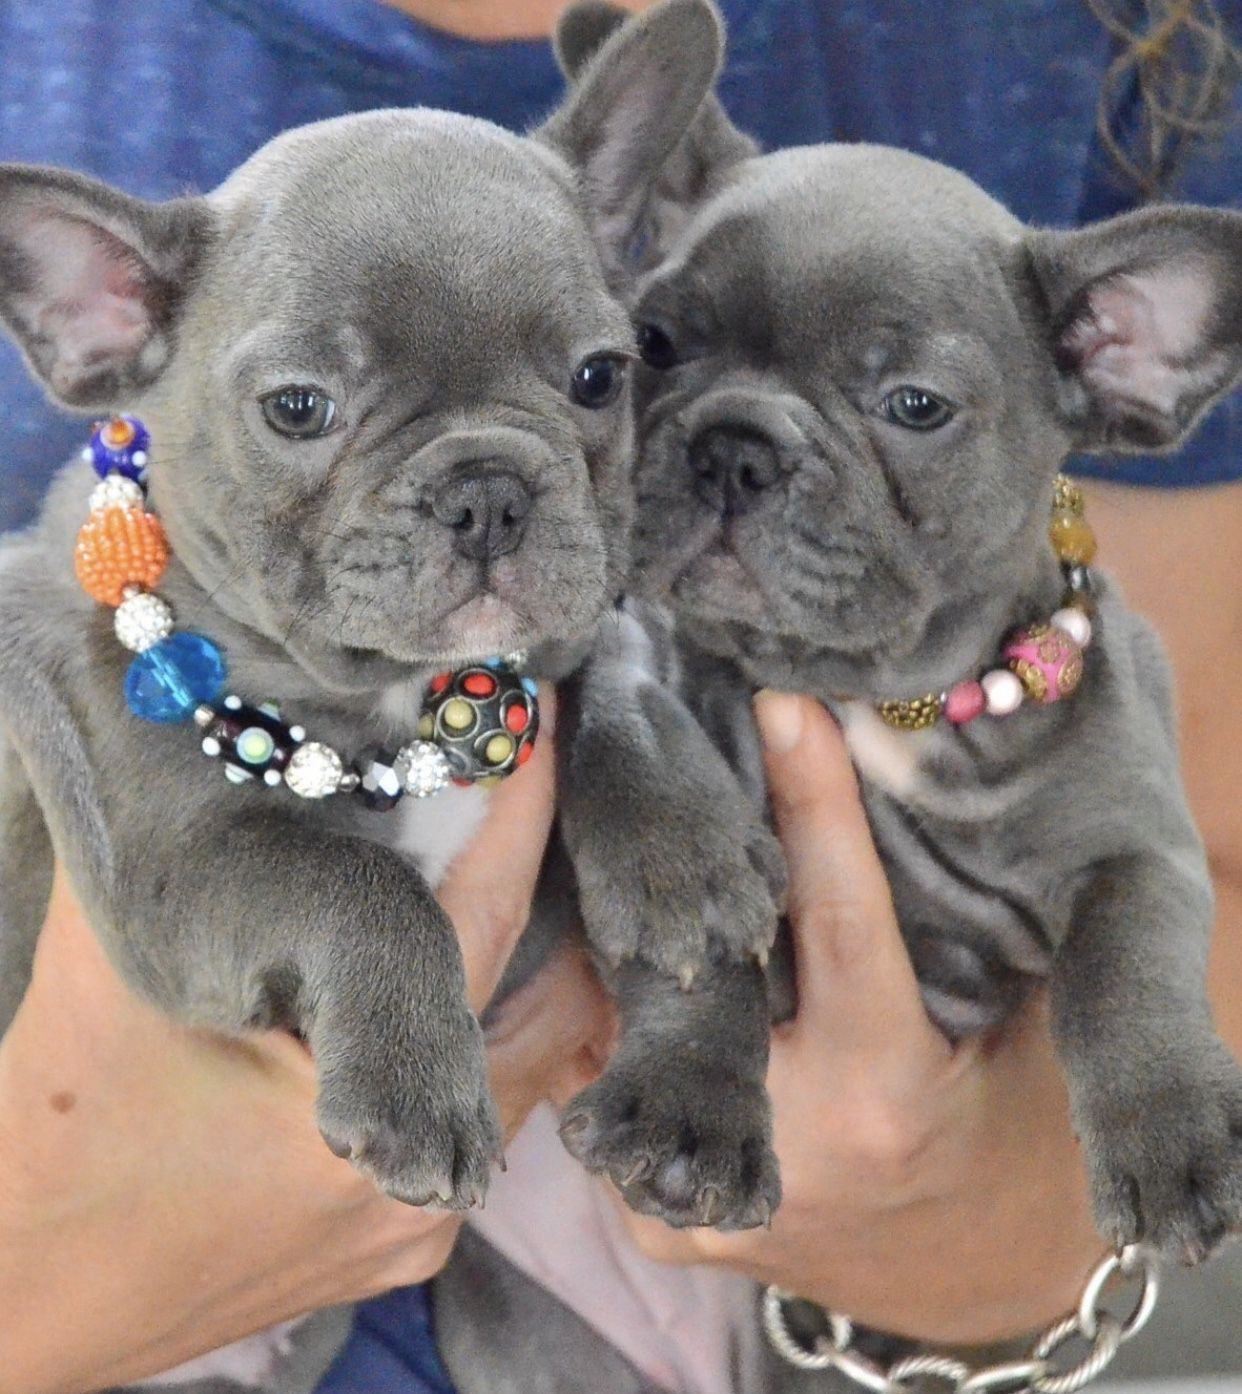 French Bulldog Puppies For Sale In Florida Akc French Bulldogs Fl Poetic French Bulldogs French Bulldog Bulldog Puppies French Bulldog Puppies